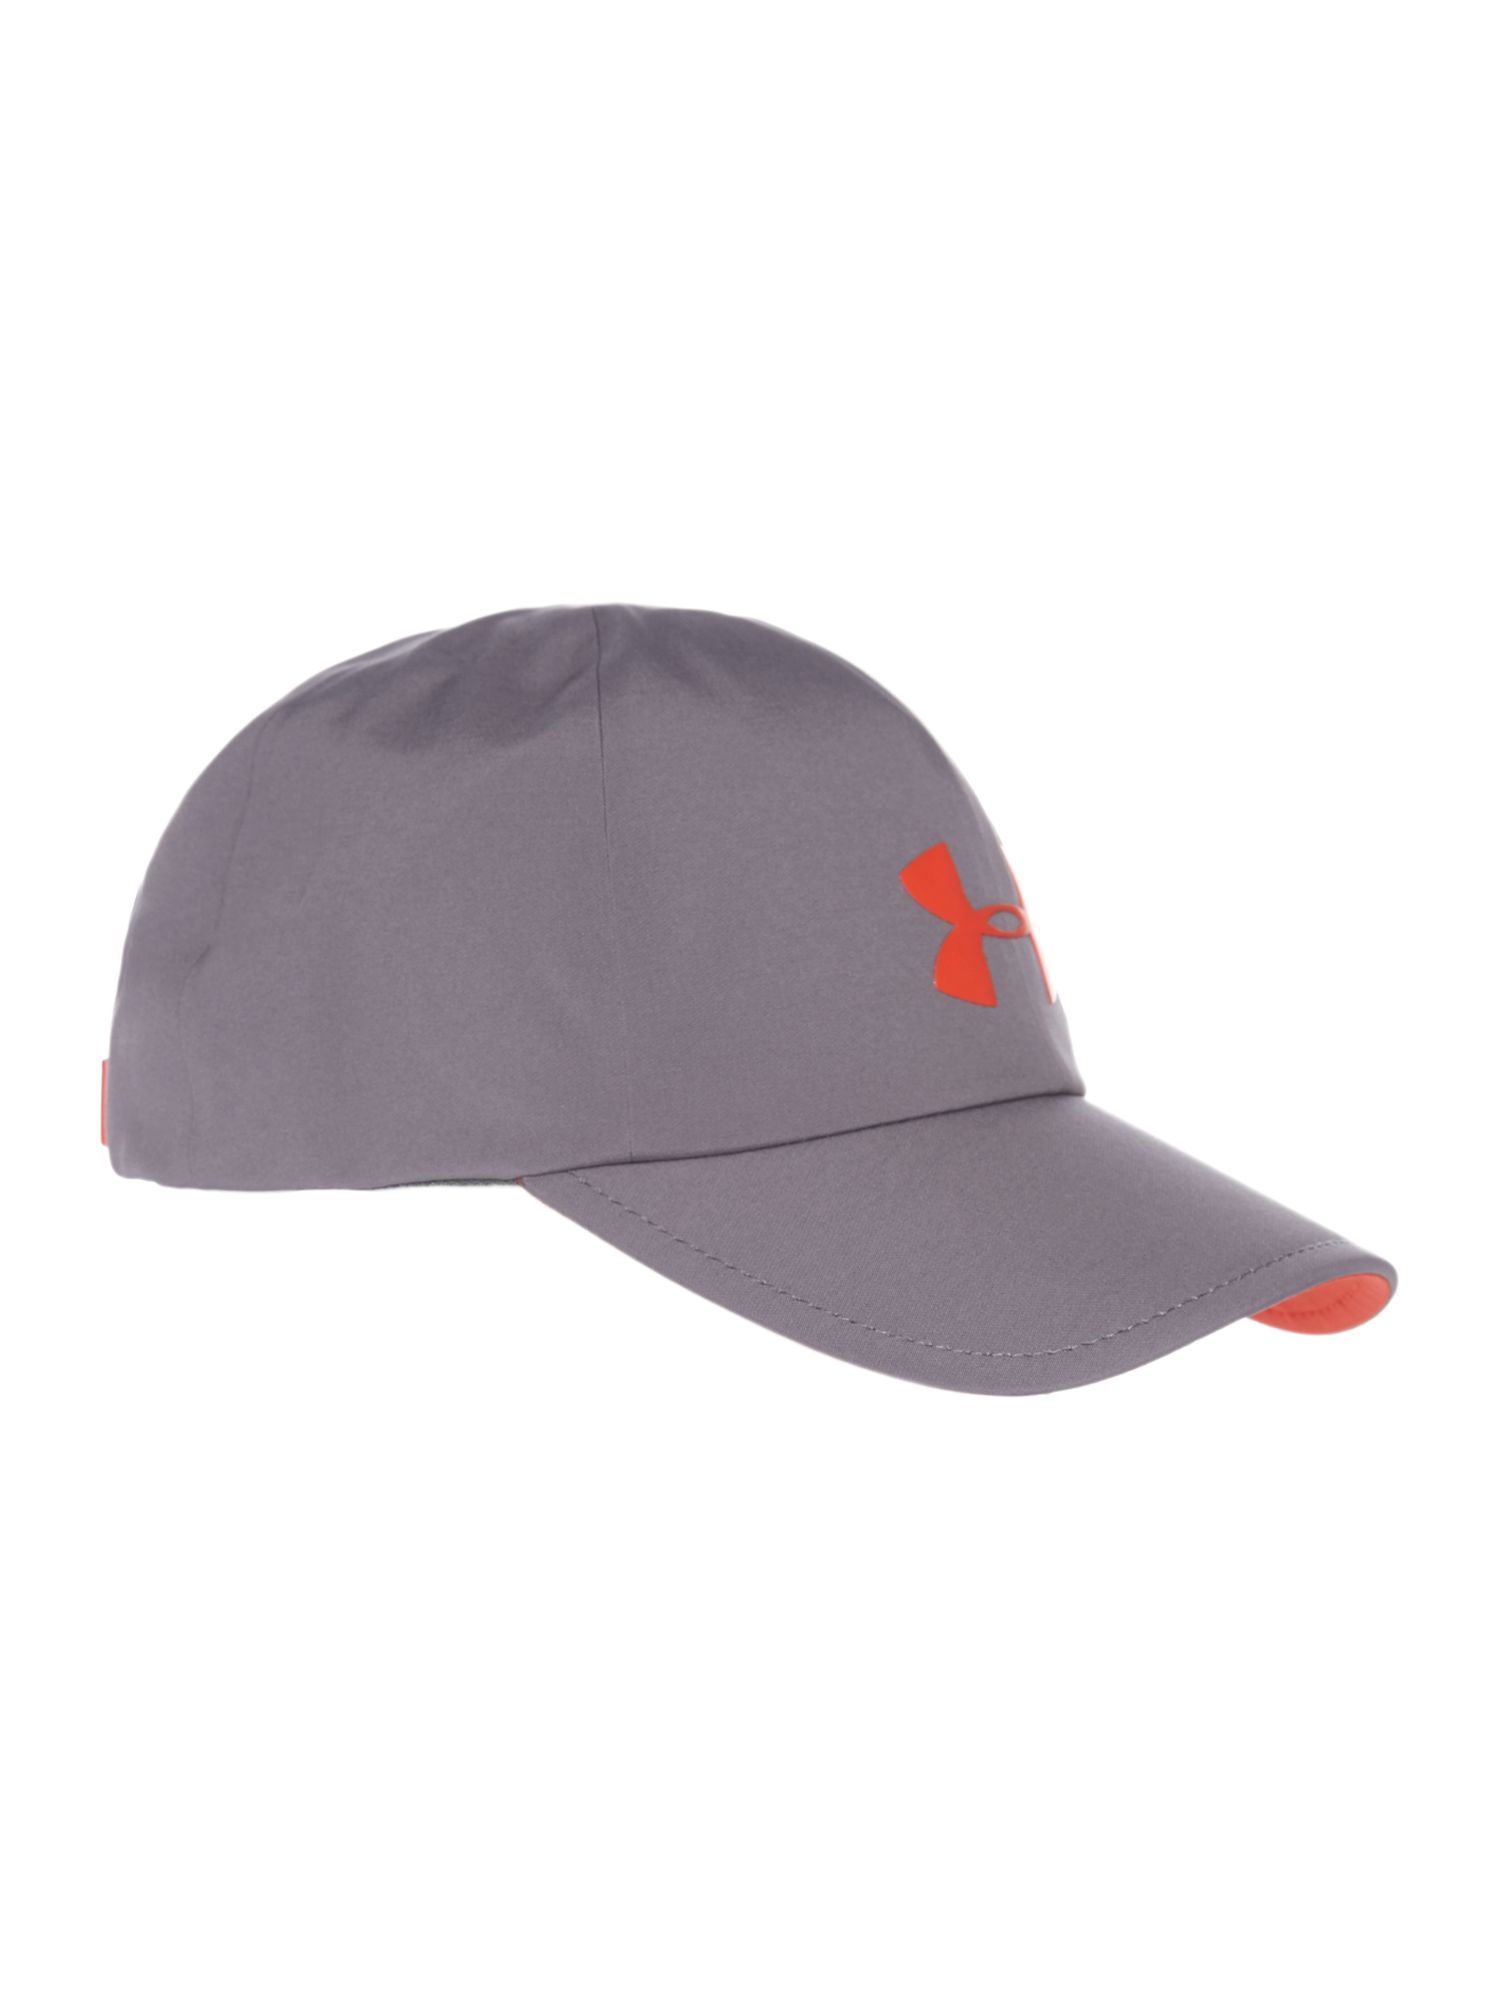 Elements storm adjustable cap